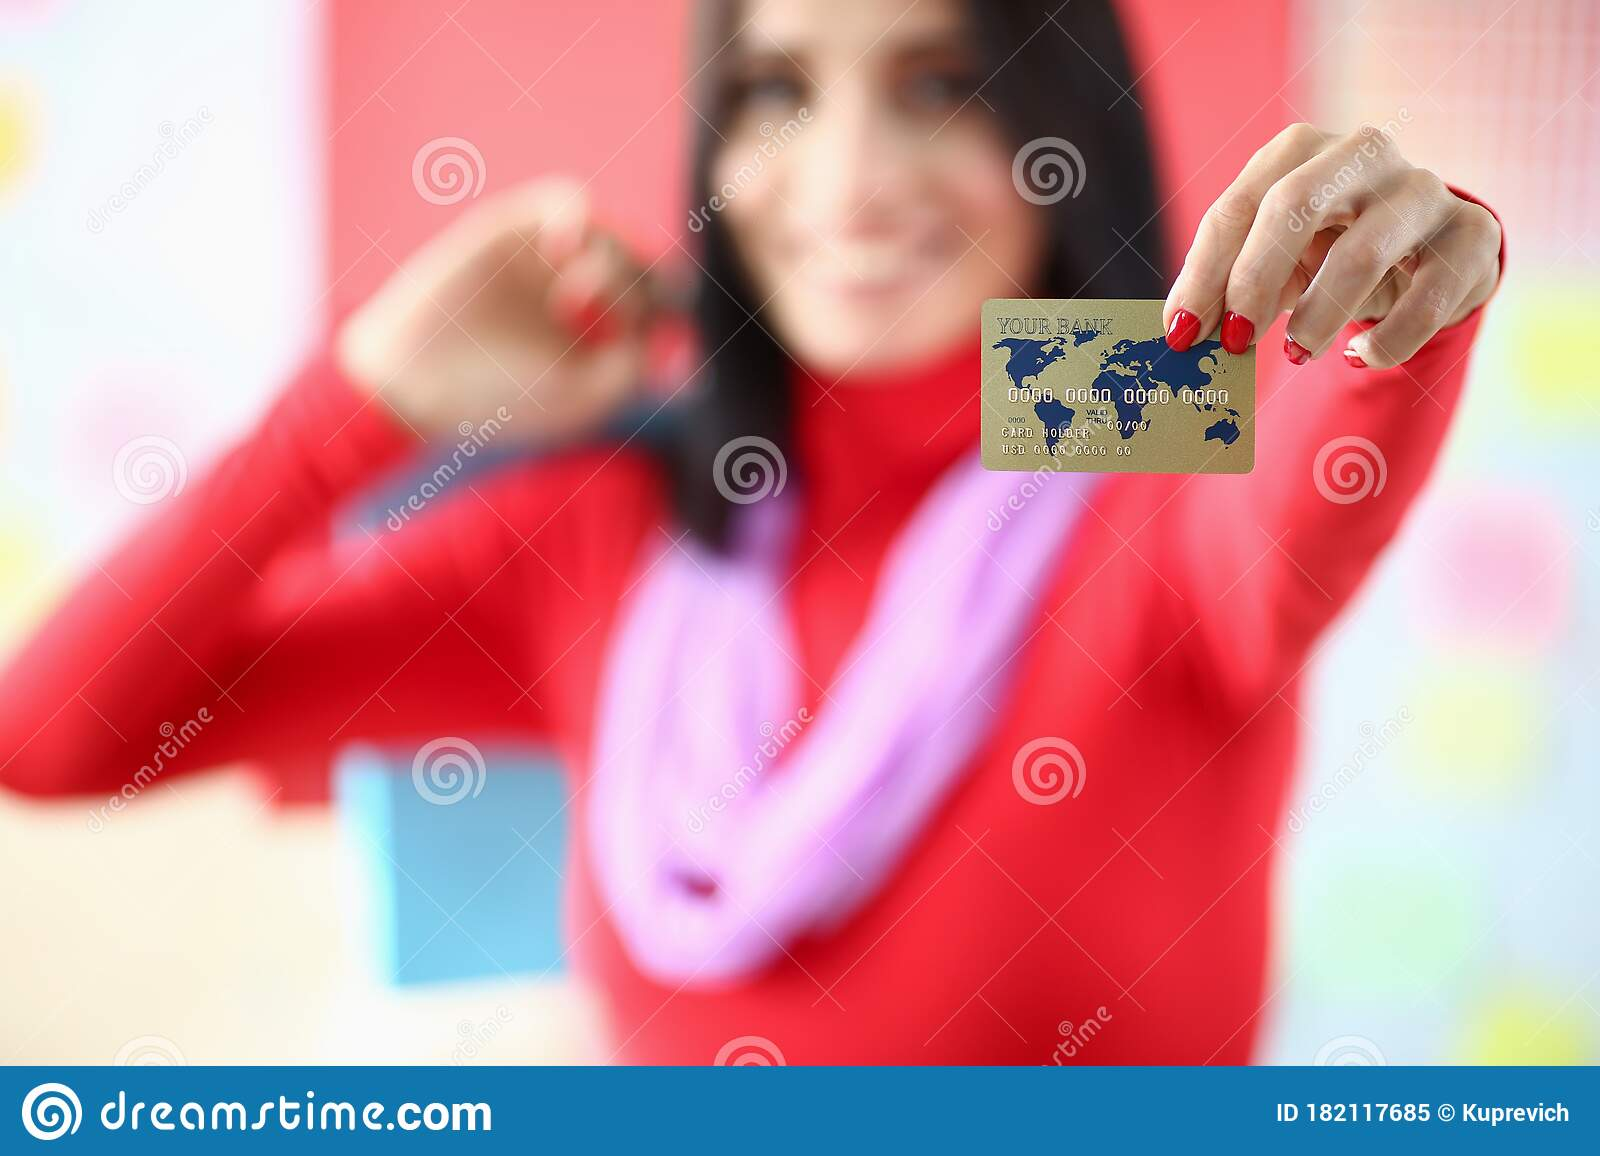 Female Fashion Designer Holding Credit Card Hands Stock Image Image Of Dummy Garment 182117685